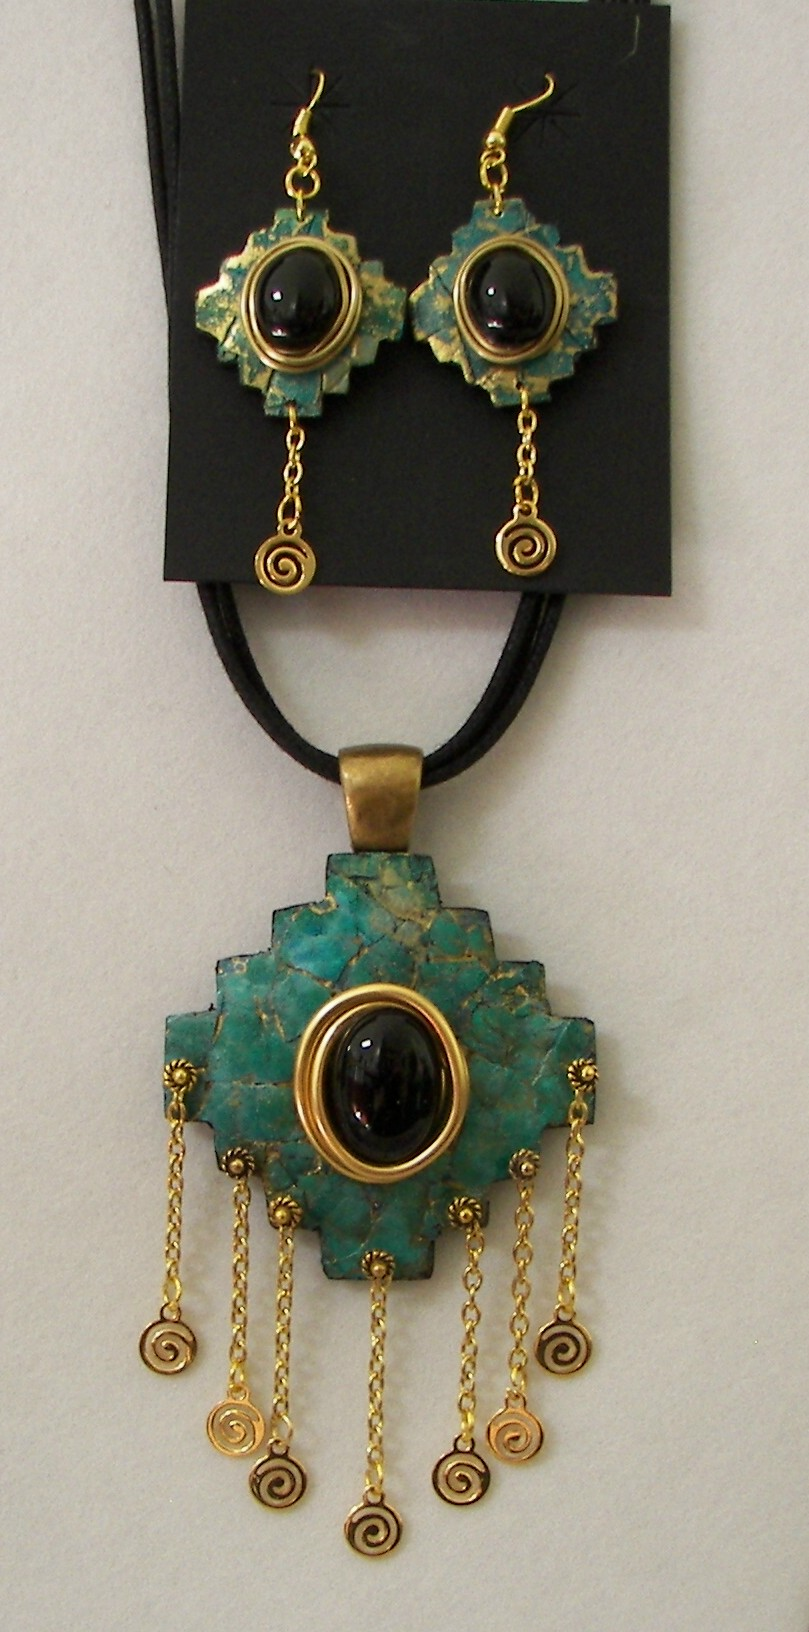 Gourd-Jewelry-Pendant-Earring-Finished